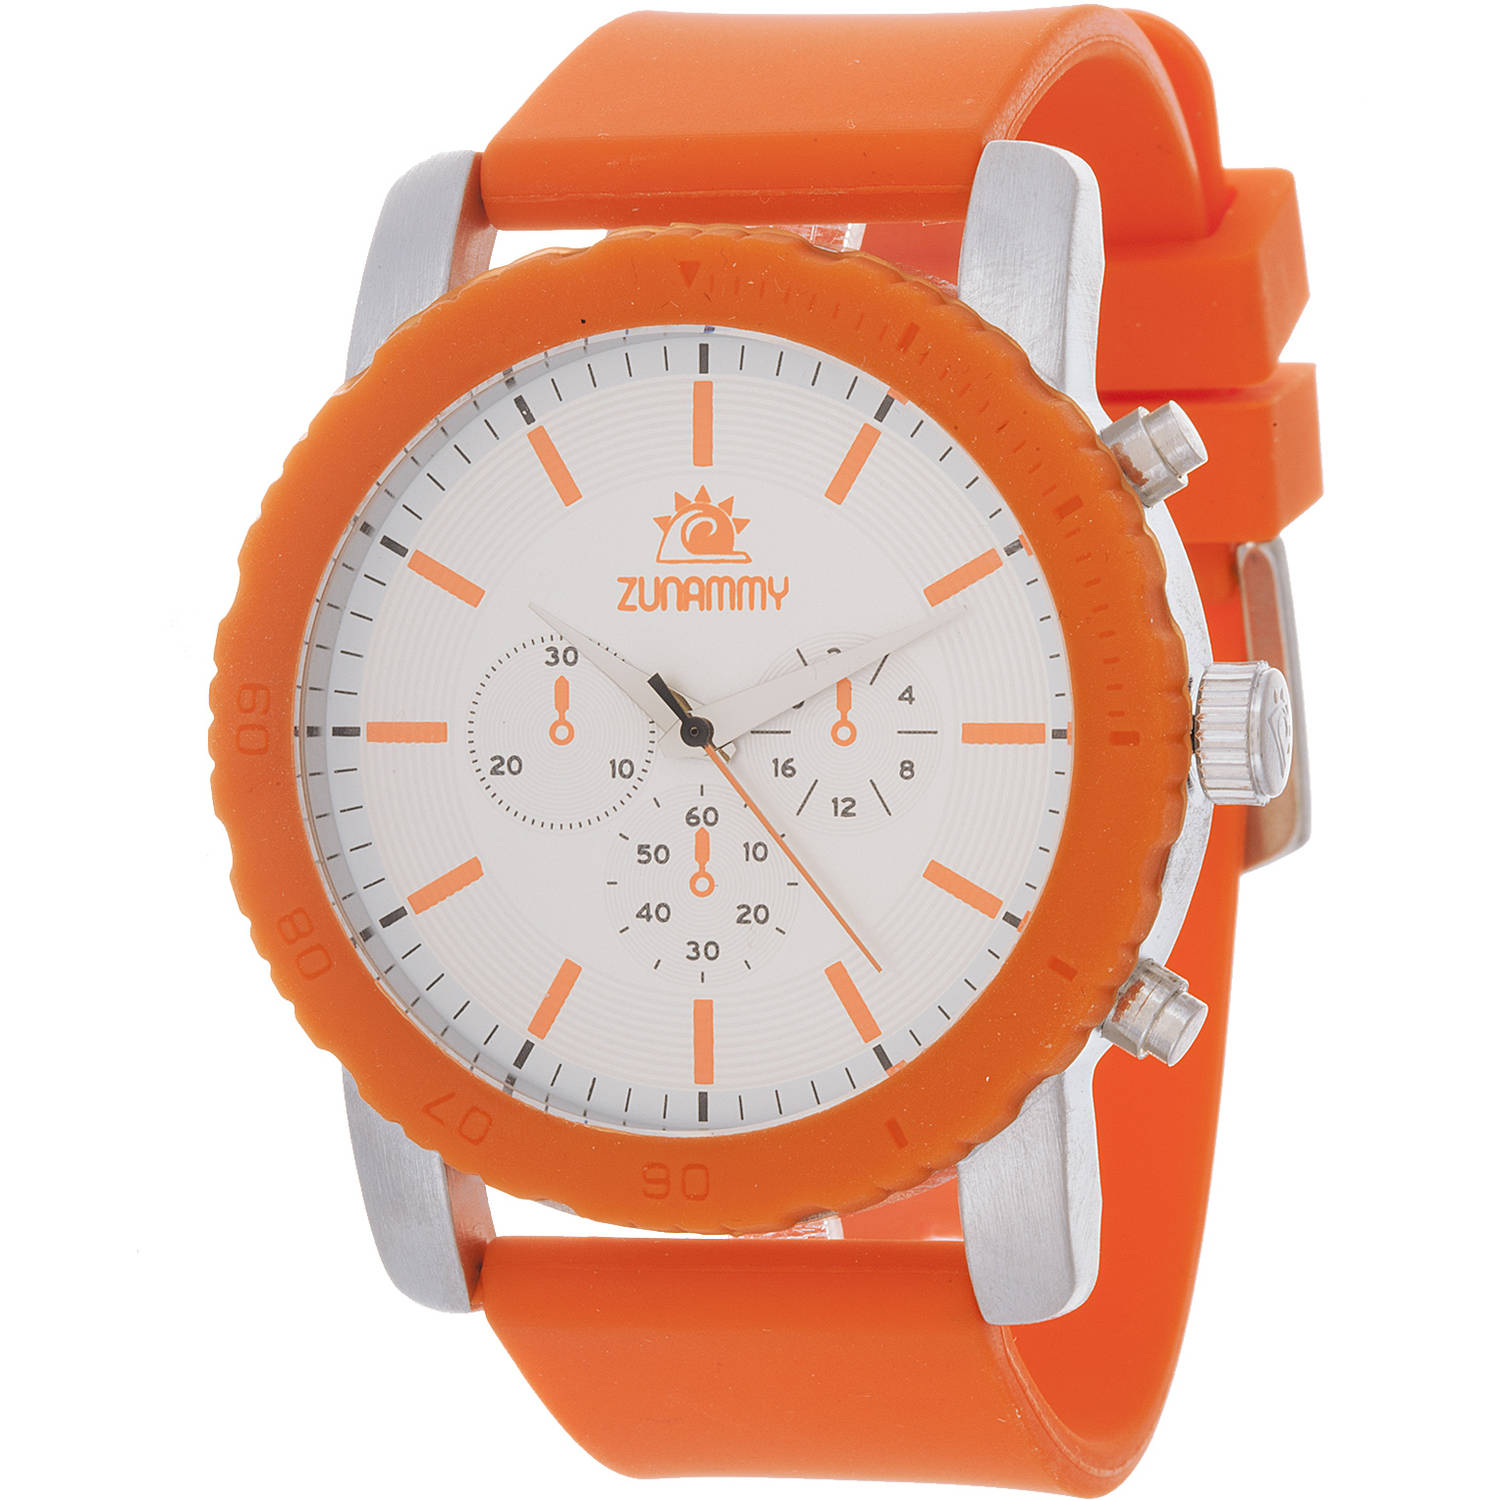 Zunammy Men's Sport and Fashion Watch, Orange Rubber Strap